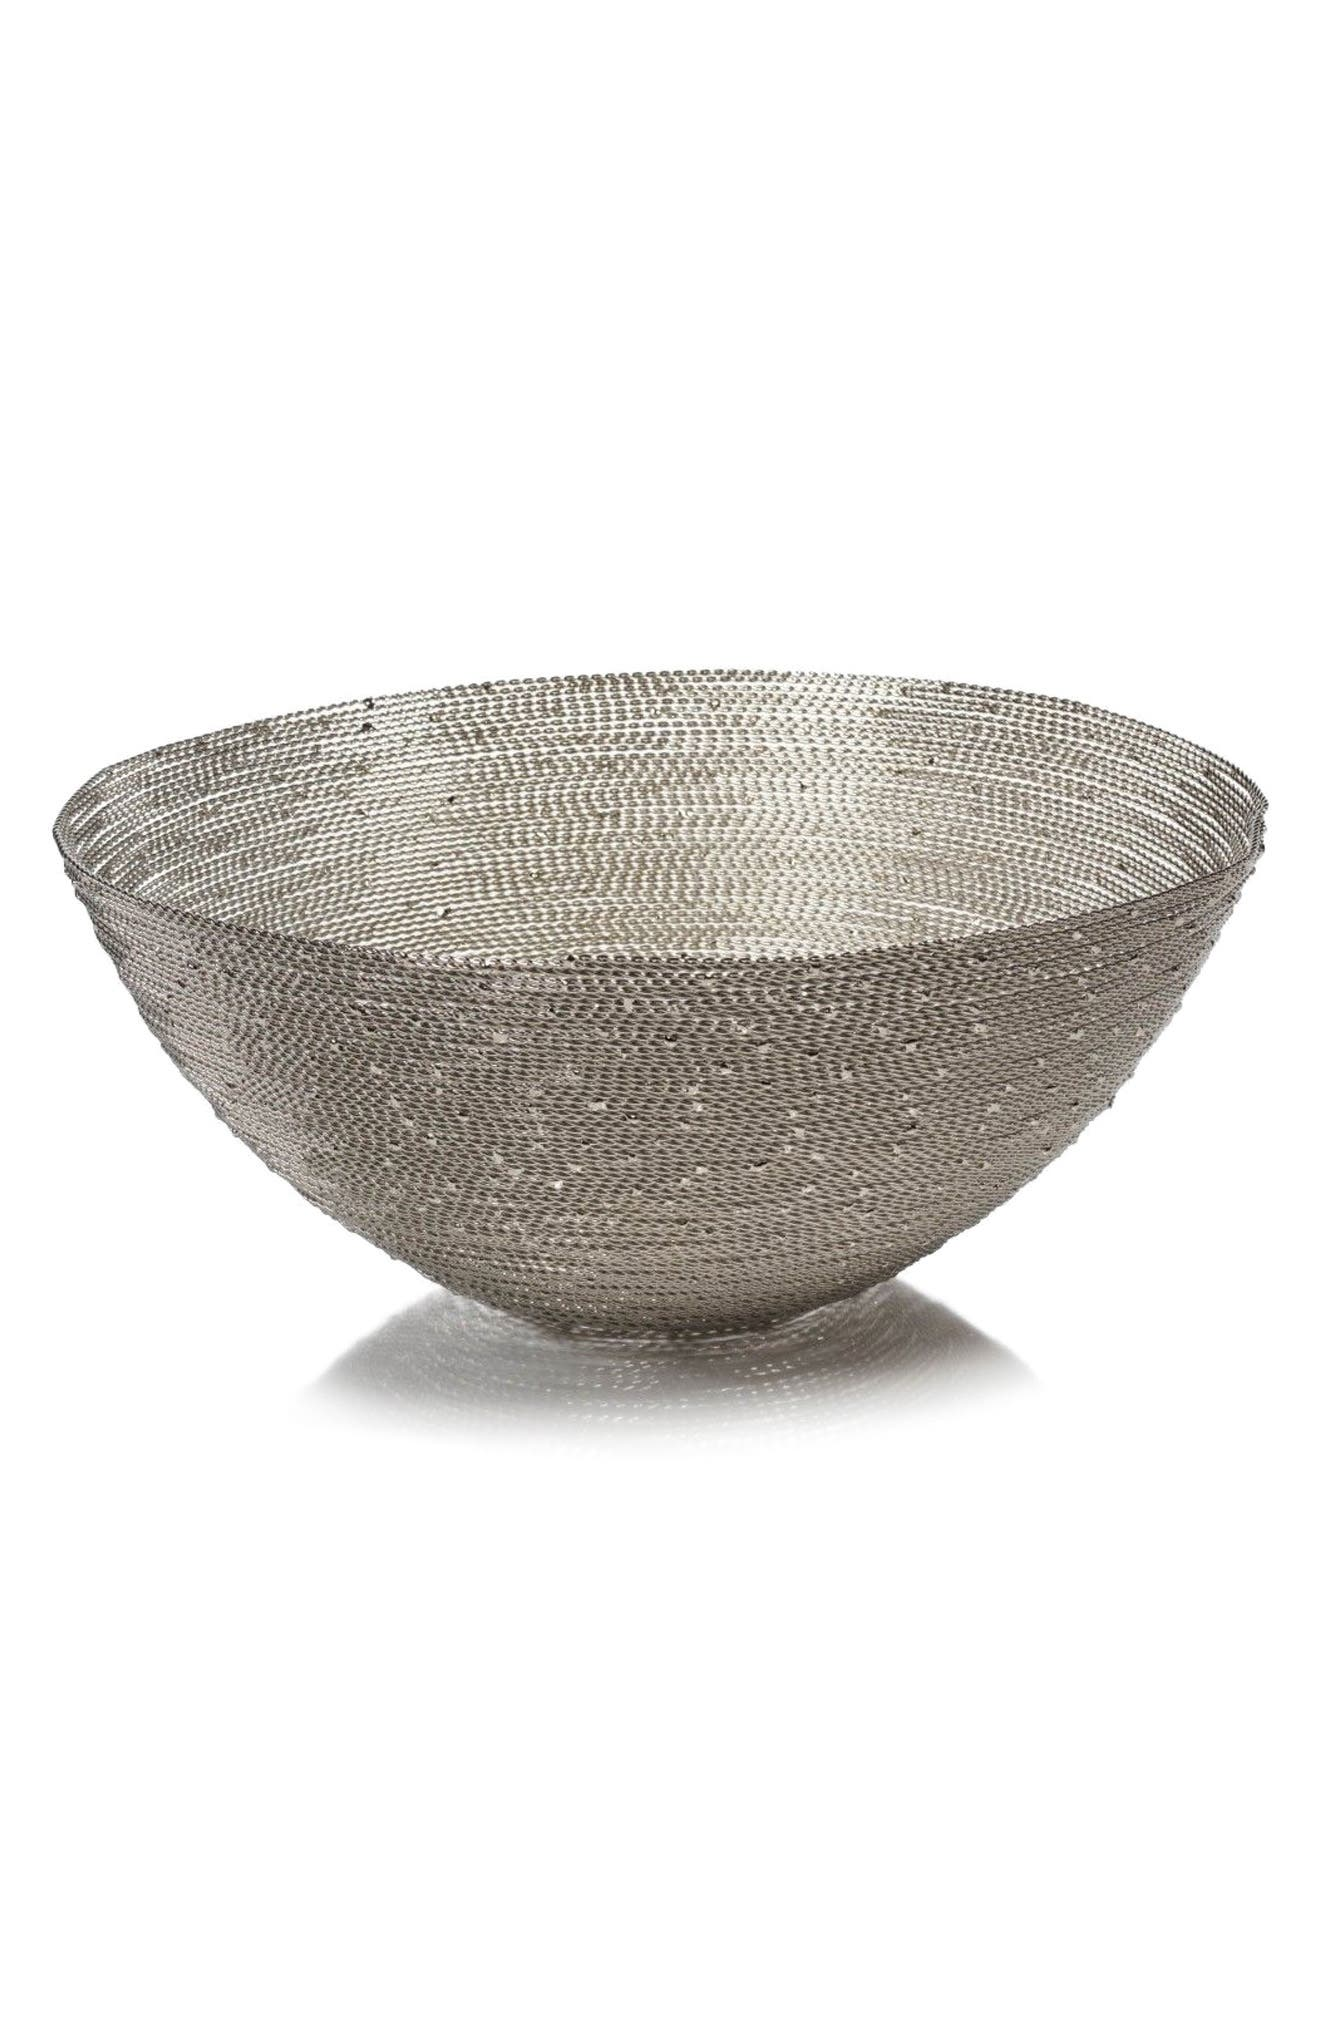 Zulu Round Woven Wire Basket,                         Main,                         color, Silver